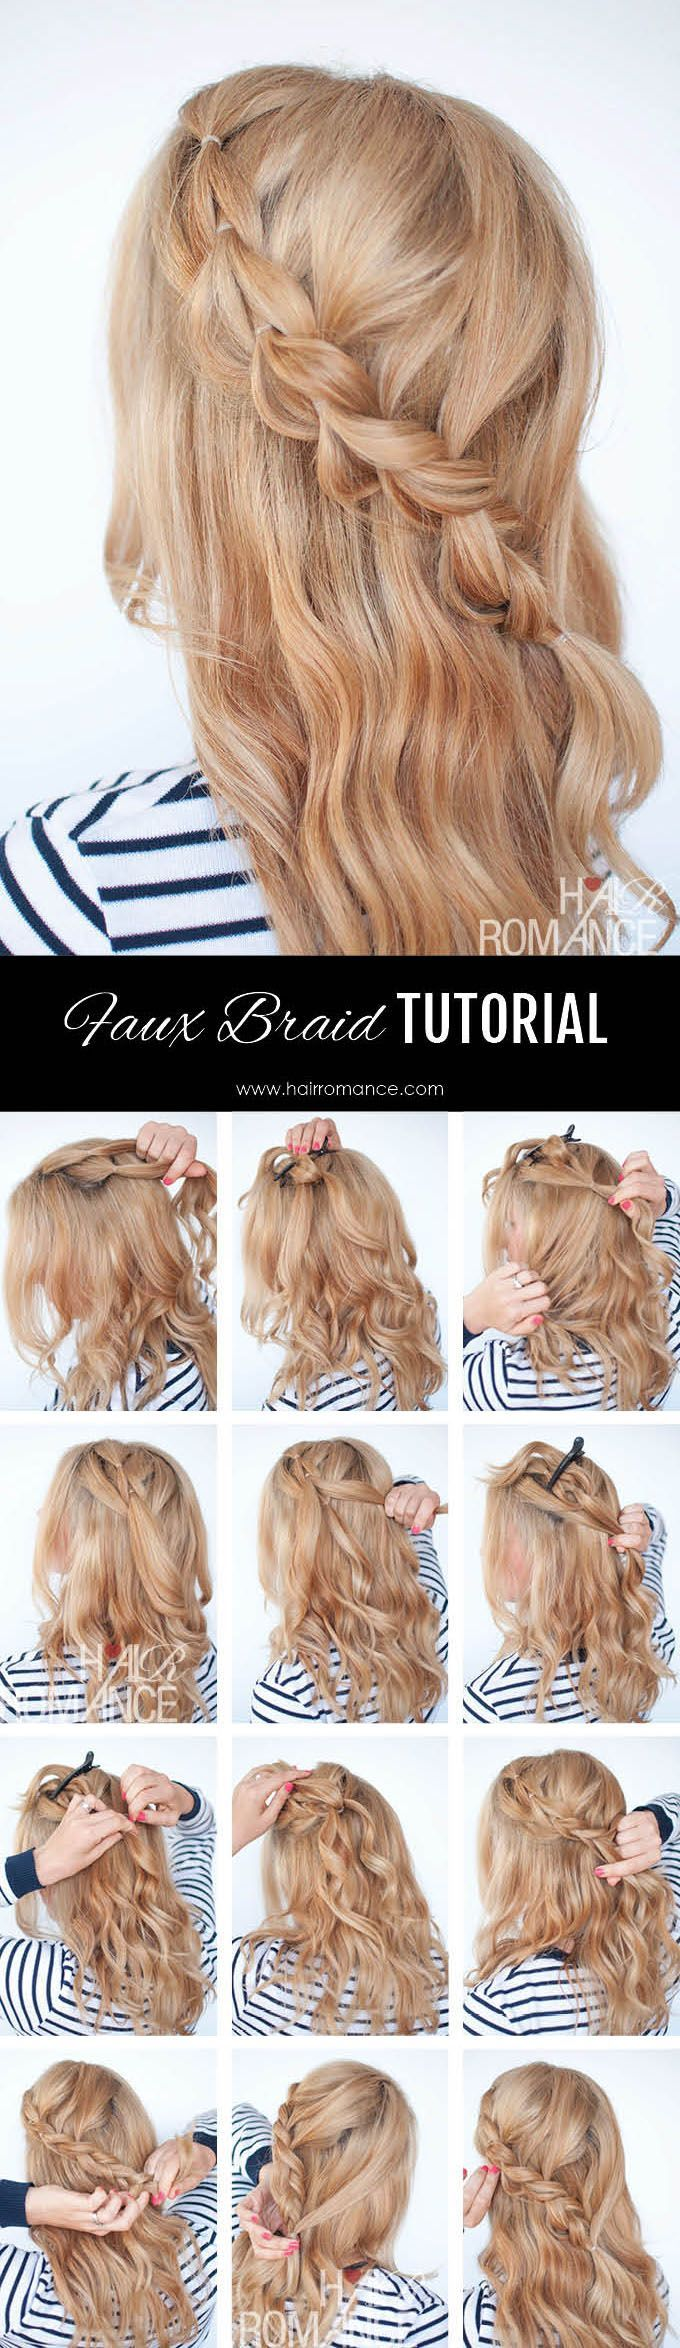 awesome The no-braid braid – 5 pull-through braid tutorials (Hair Romance) by http://www.top10z-hairstyles.top/hair-tutorials/the-no-braid-braid-5-pull-through-braid-tutorials-hair-romance/